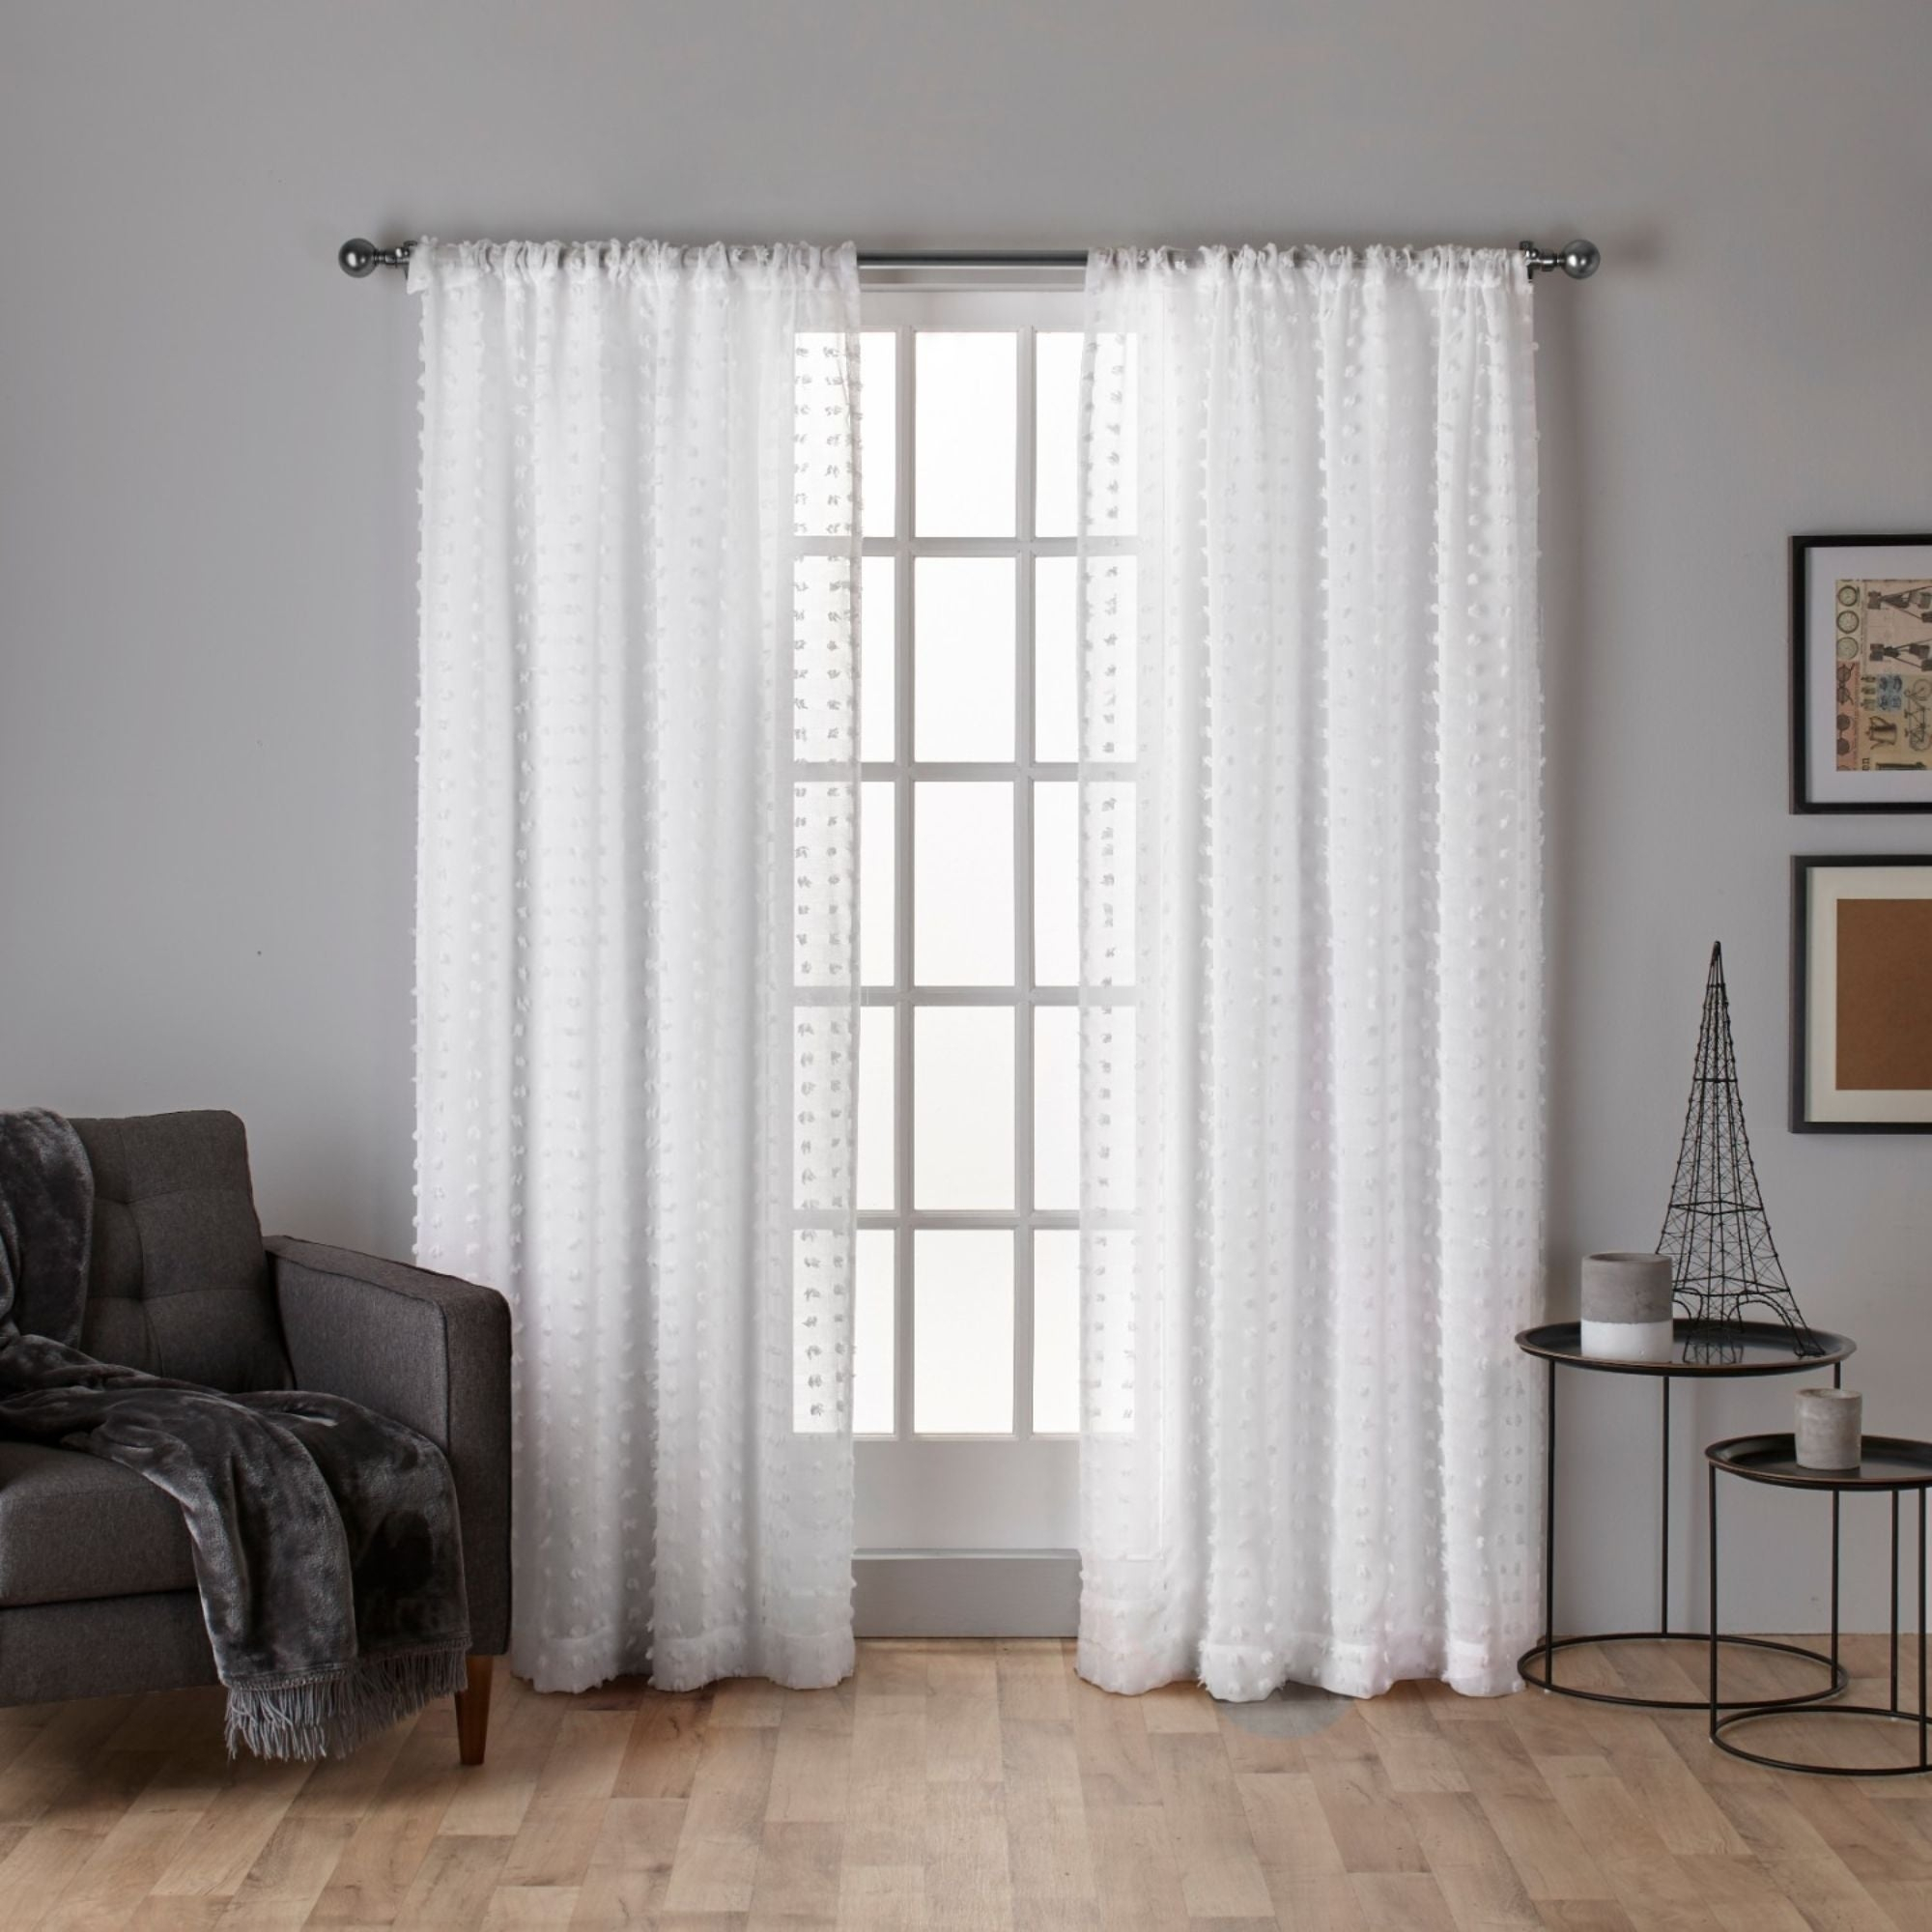 Ati Home Spirit Applique Sheer Rod Pocket Top Curtain Panel Pair With Tassels Applique Sheer Rod Pocket Top Curtain Panel Pairs (View 9 of 30)